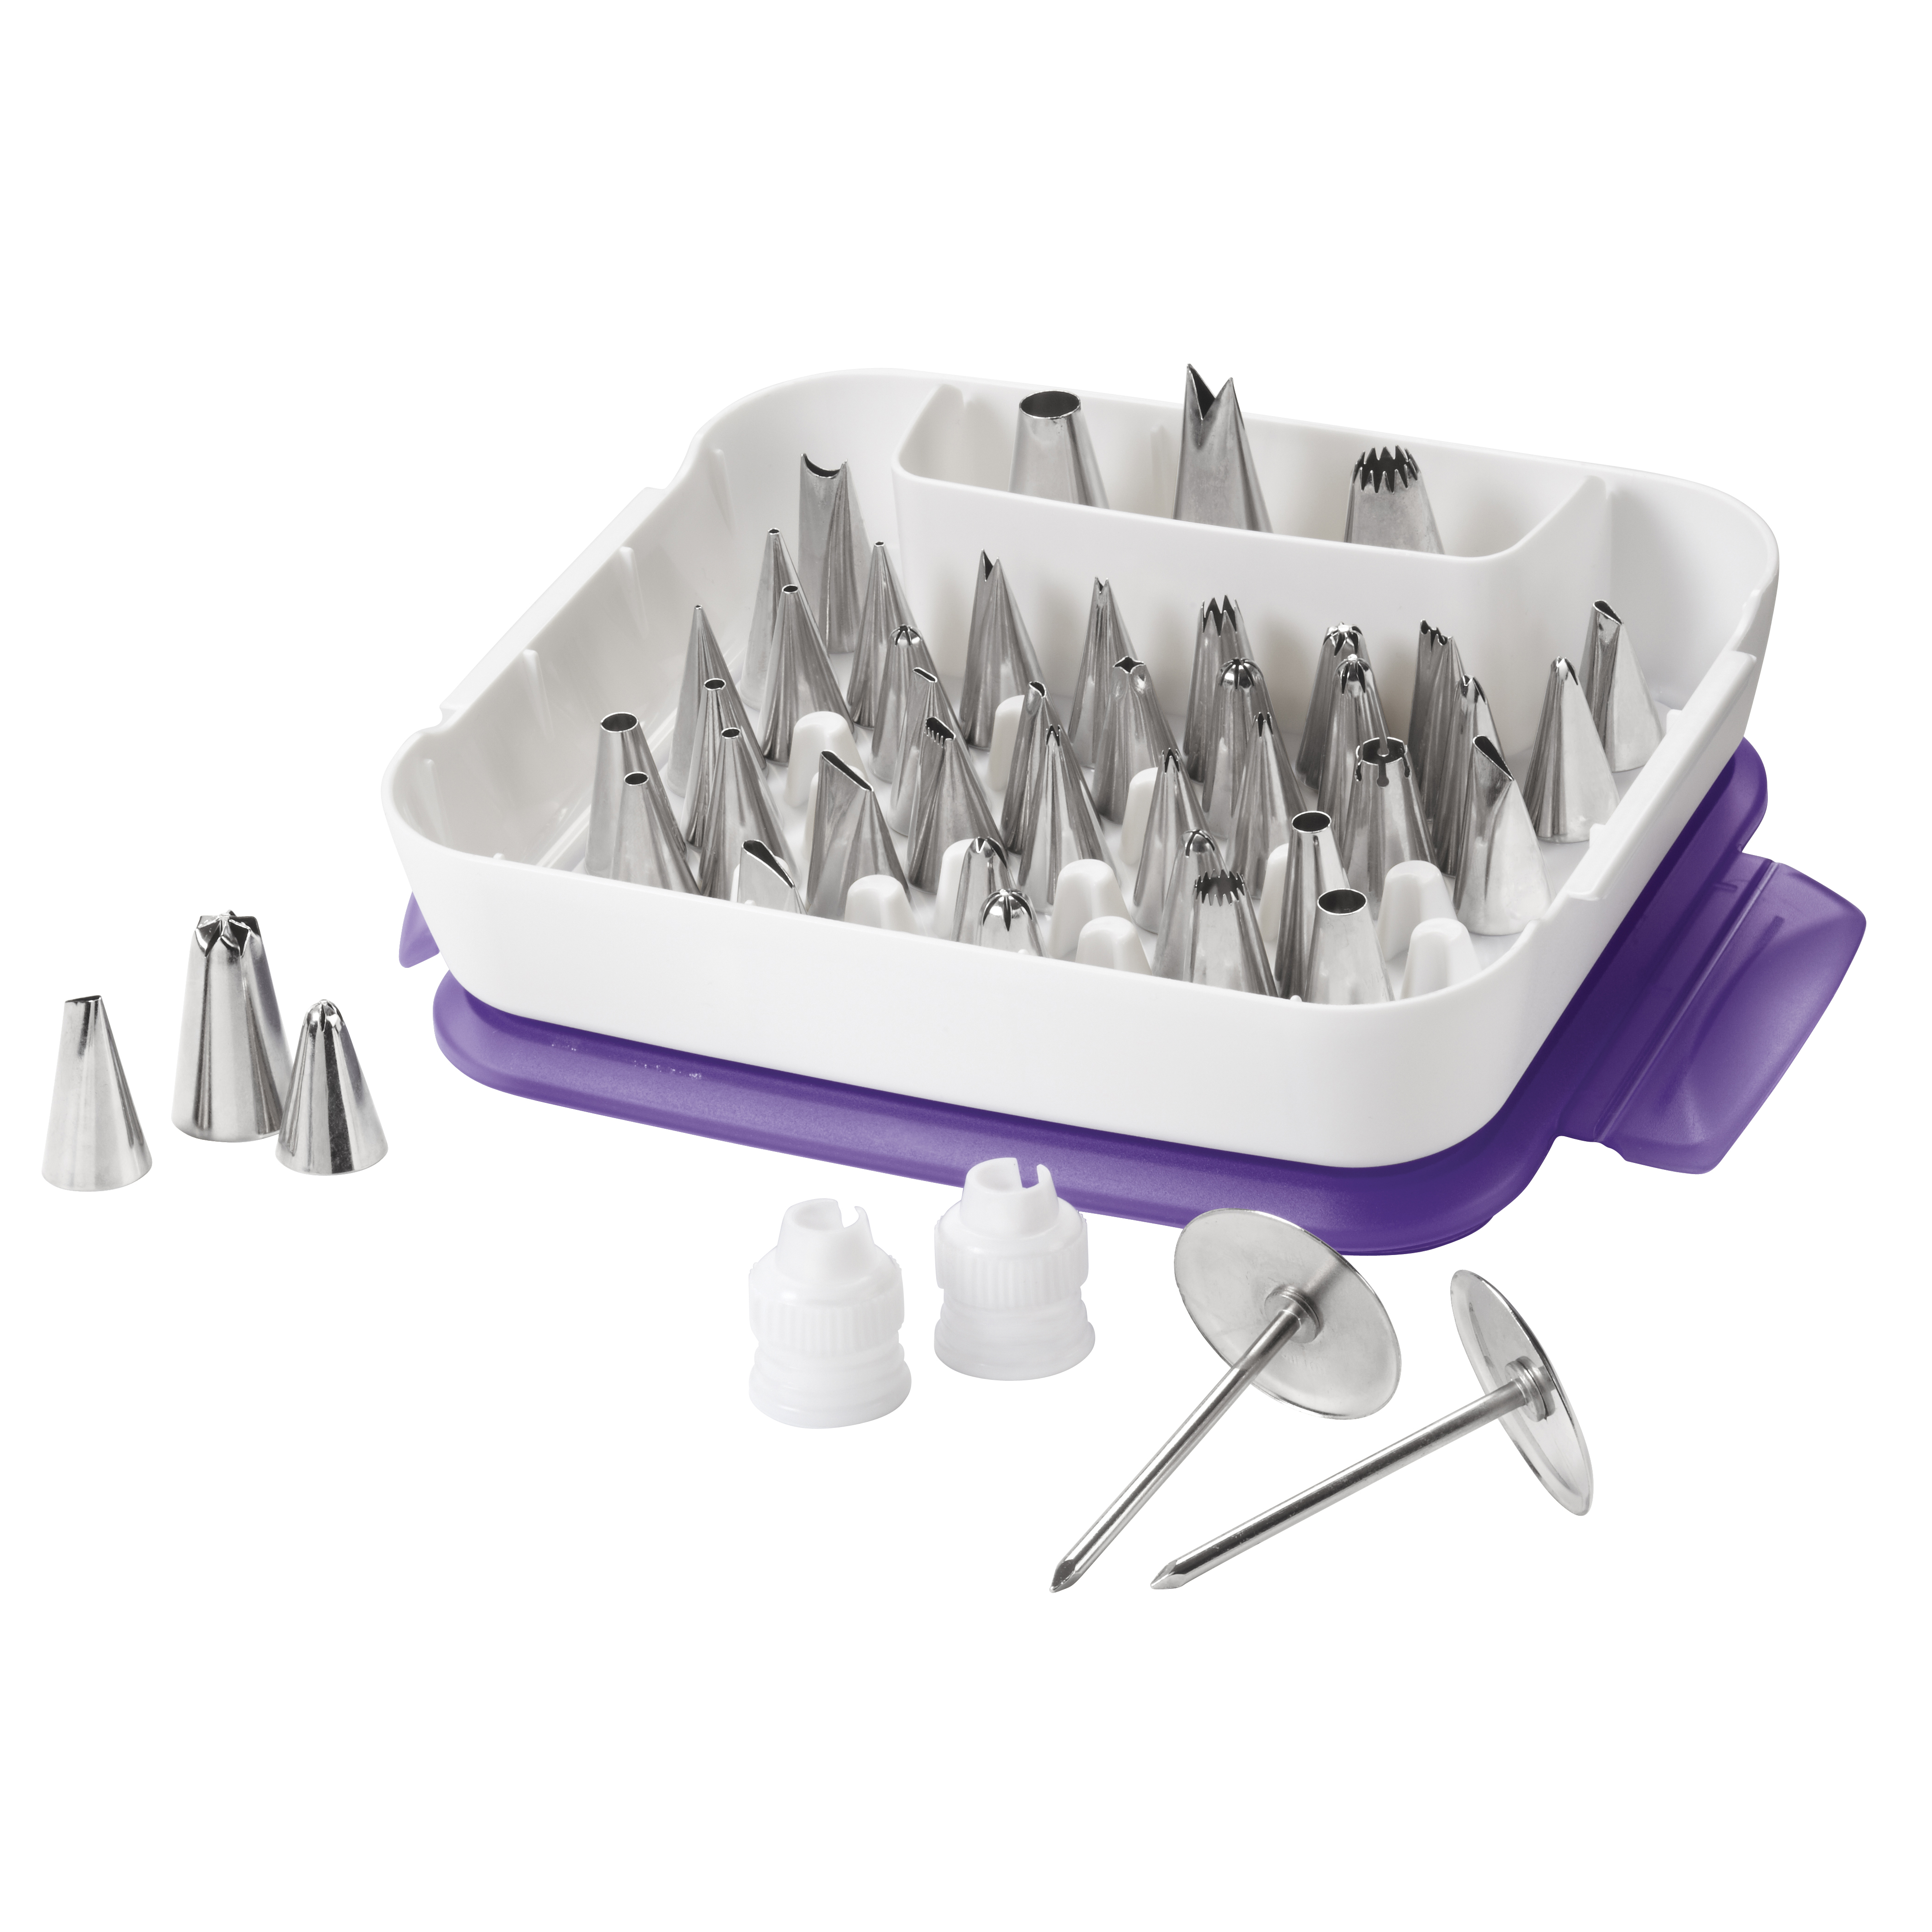 Wilton Master Cake Decorating Tips Set, 55-Piece Cake Decorating Supply Set